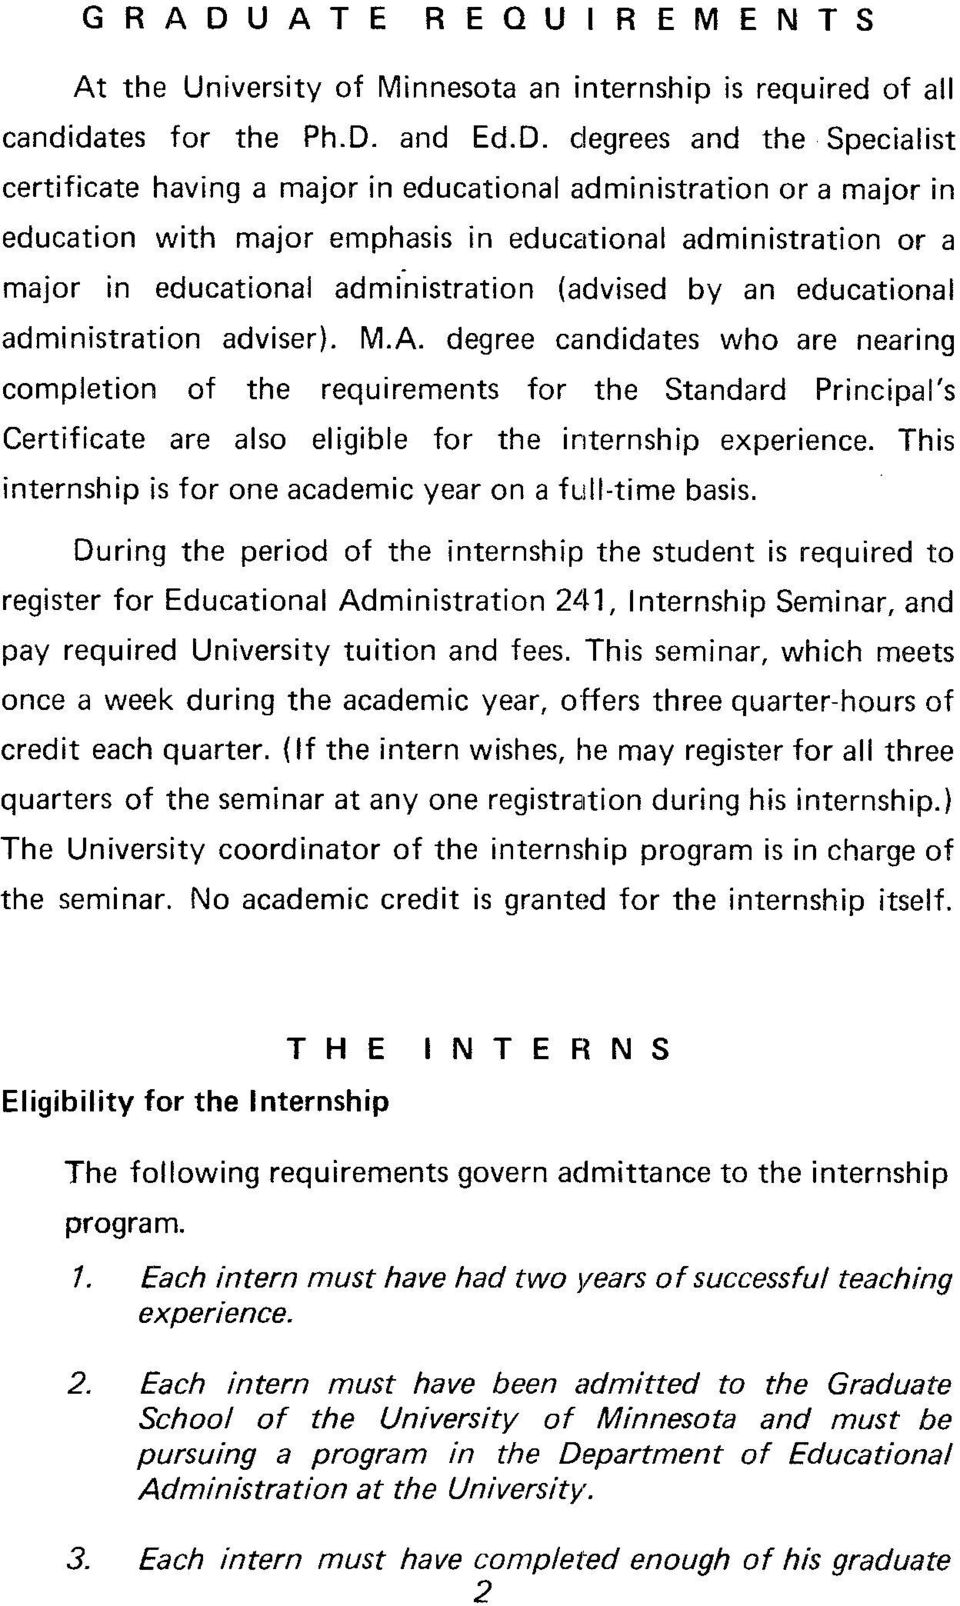 degree candidates who are nearing completion of the requirements for the Standard Principal's Certificate are also eligible for the internship experience.